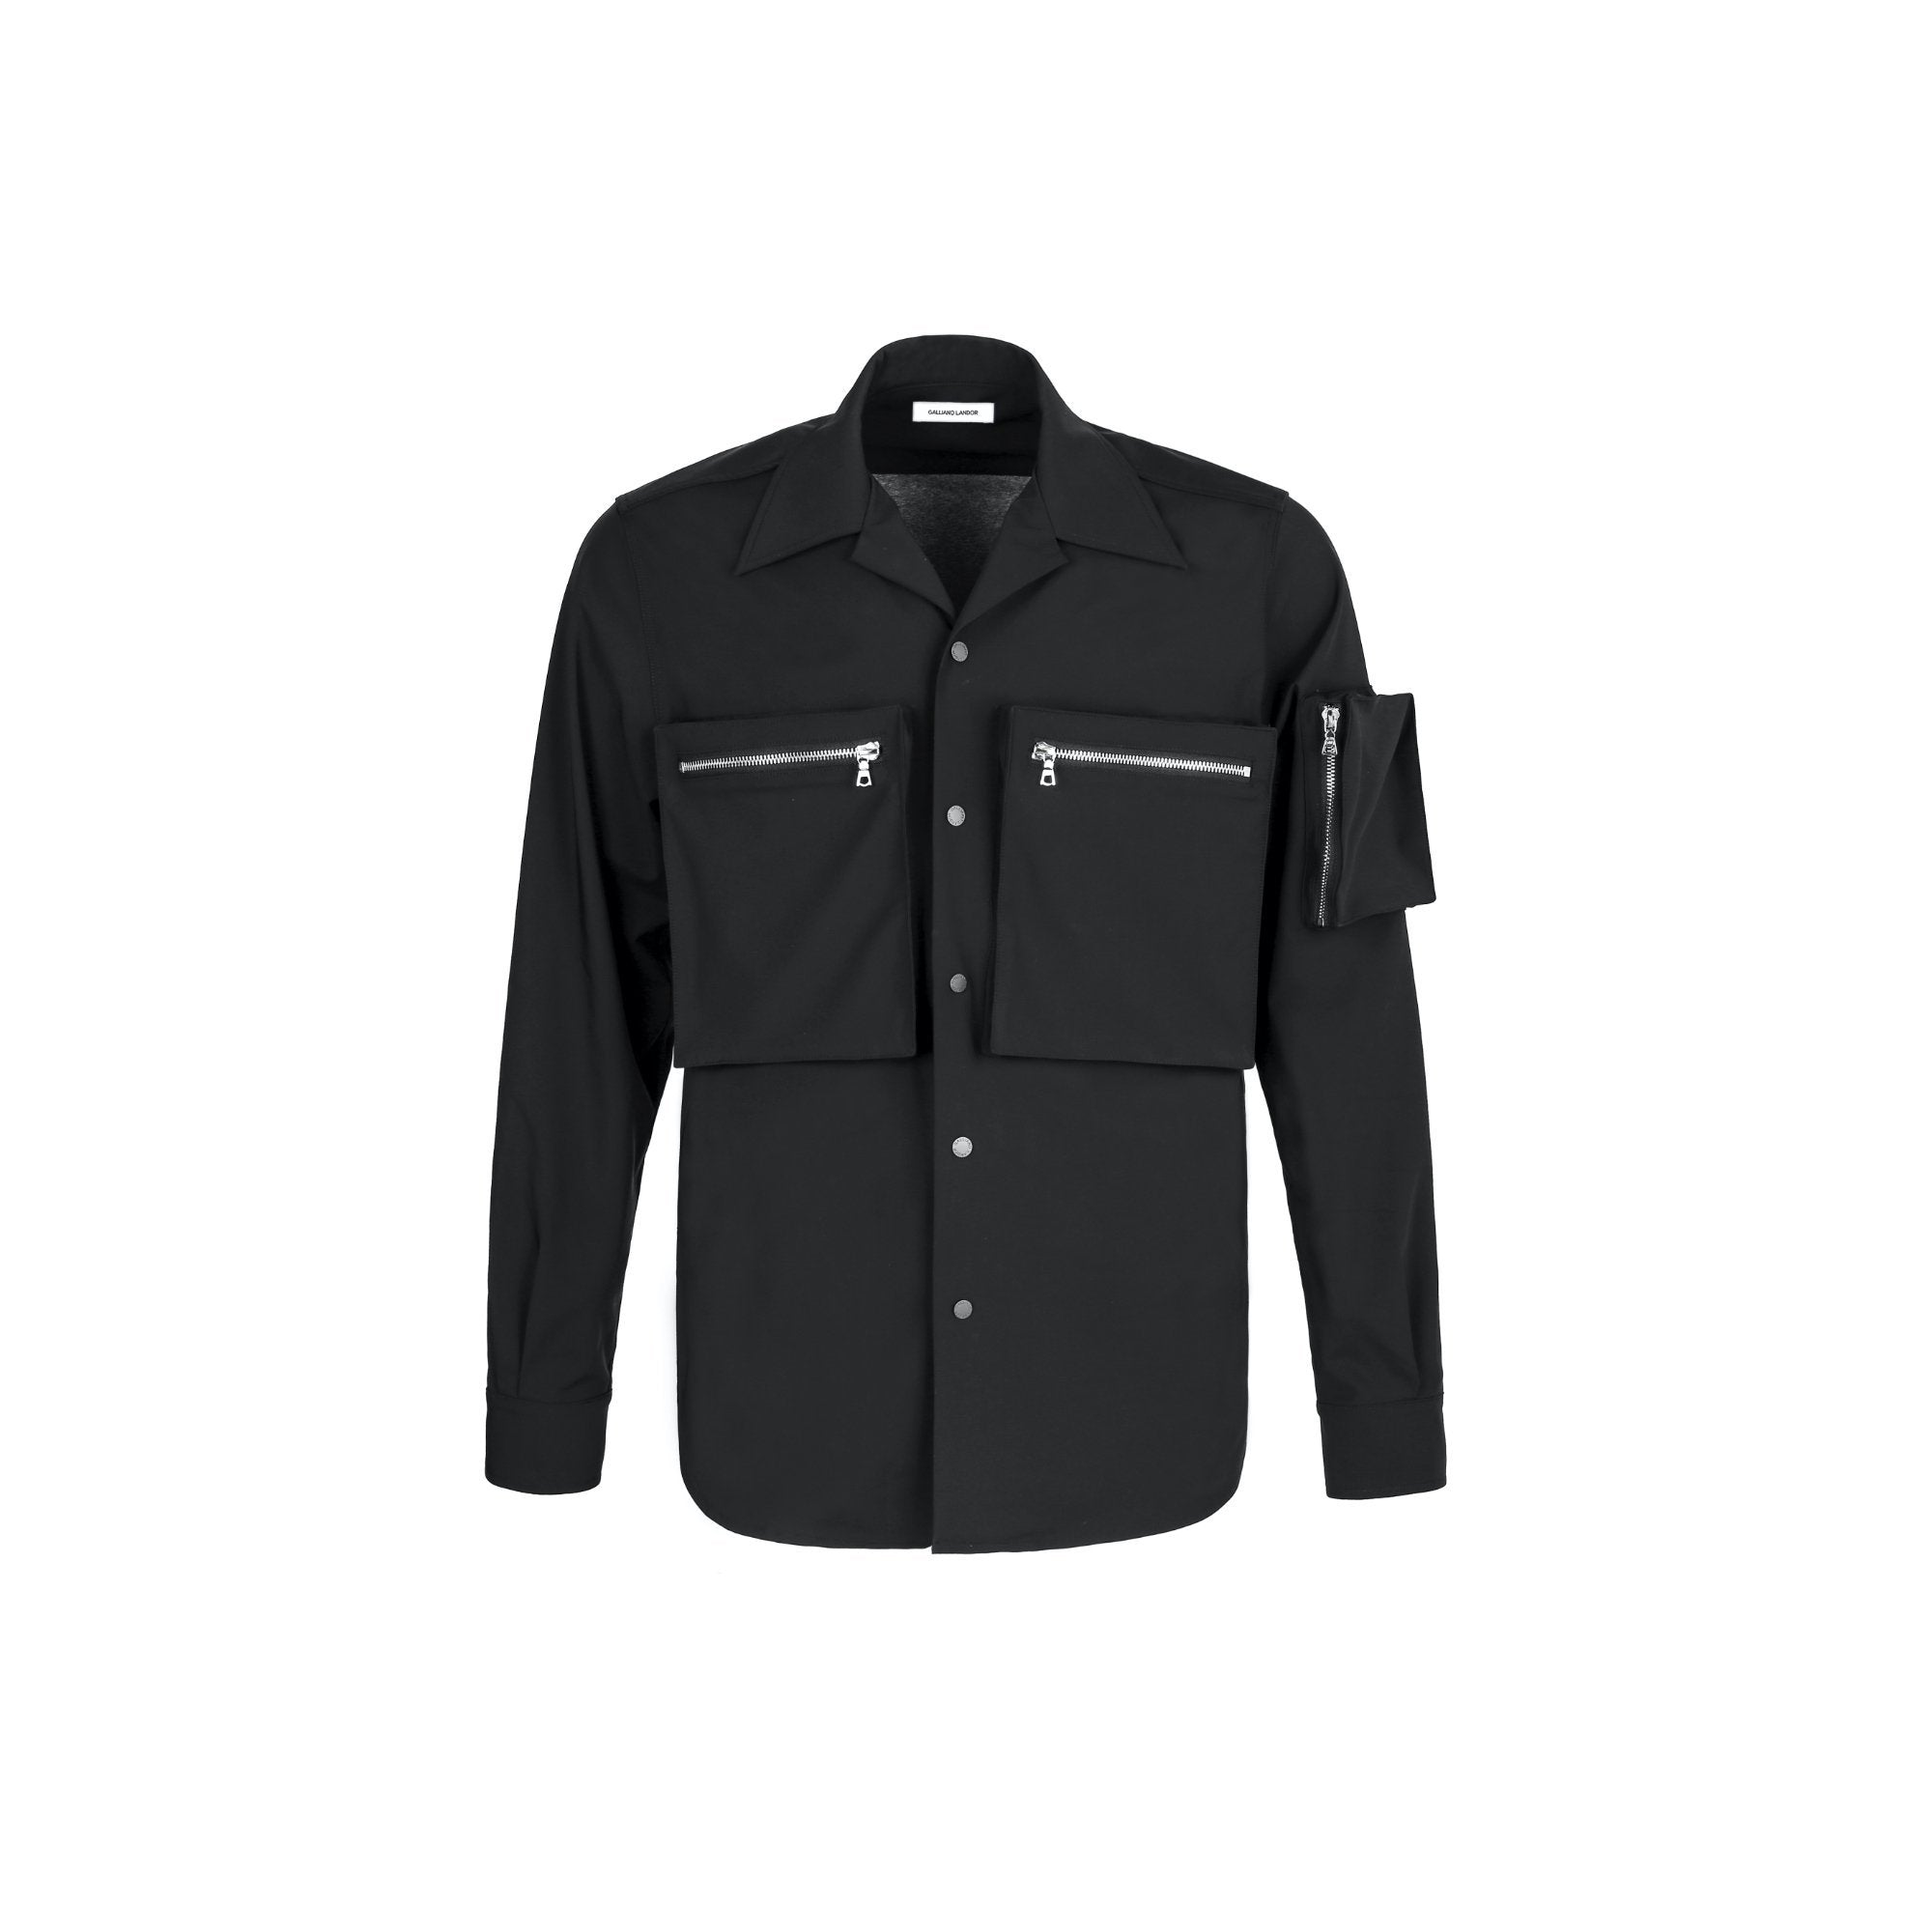 GALLIANO LANDOR Black Aero-Layer Tech-Nylon Shirt | MADA IN CHINA